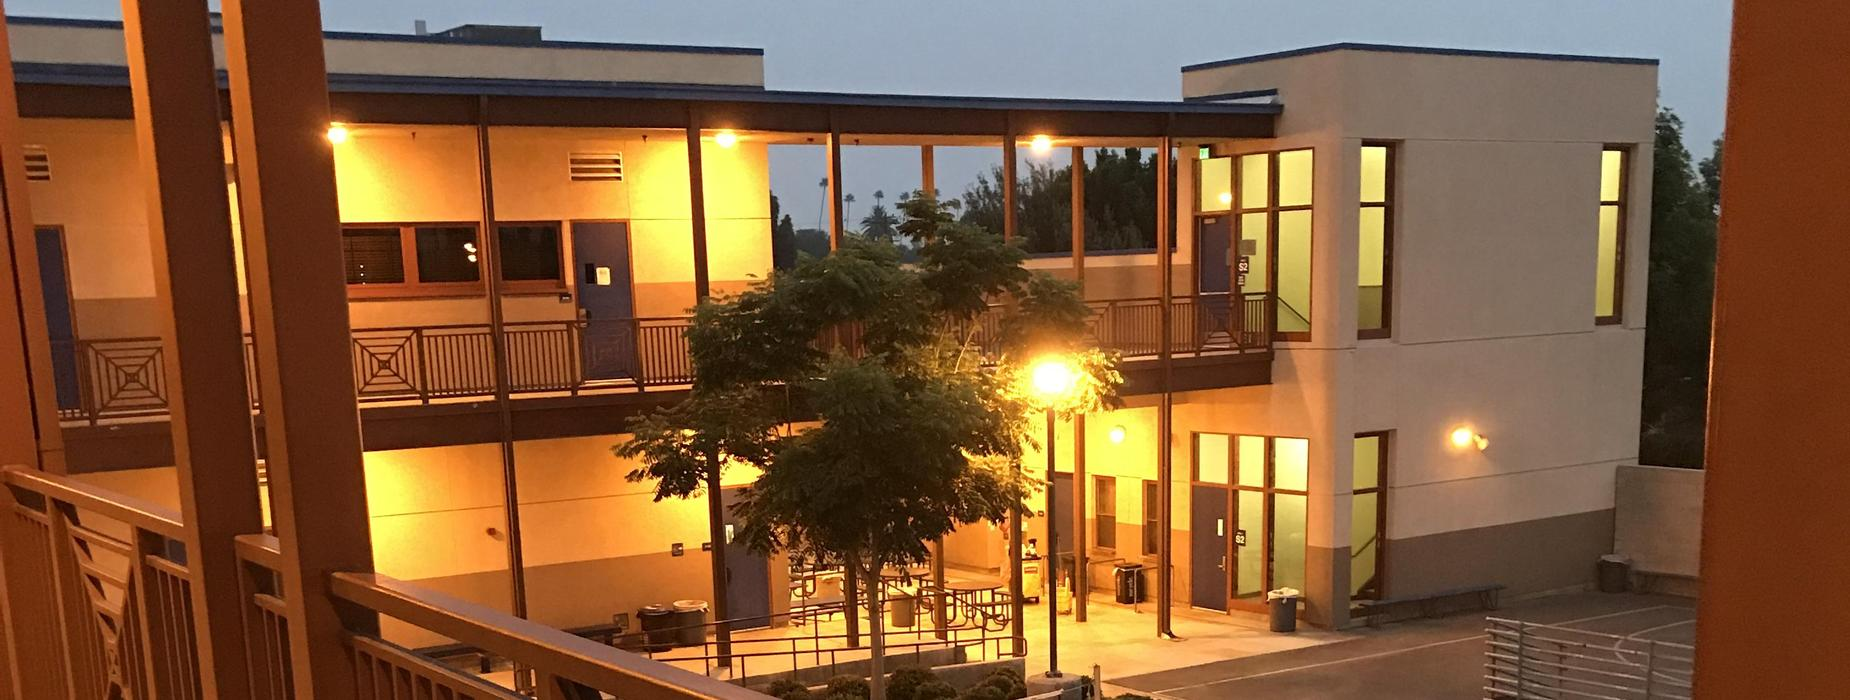 CHS Building at night